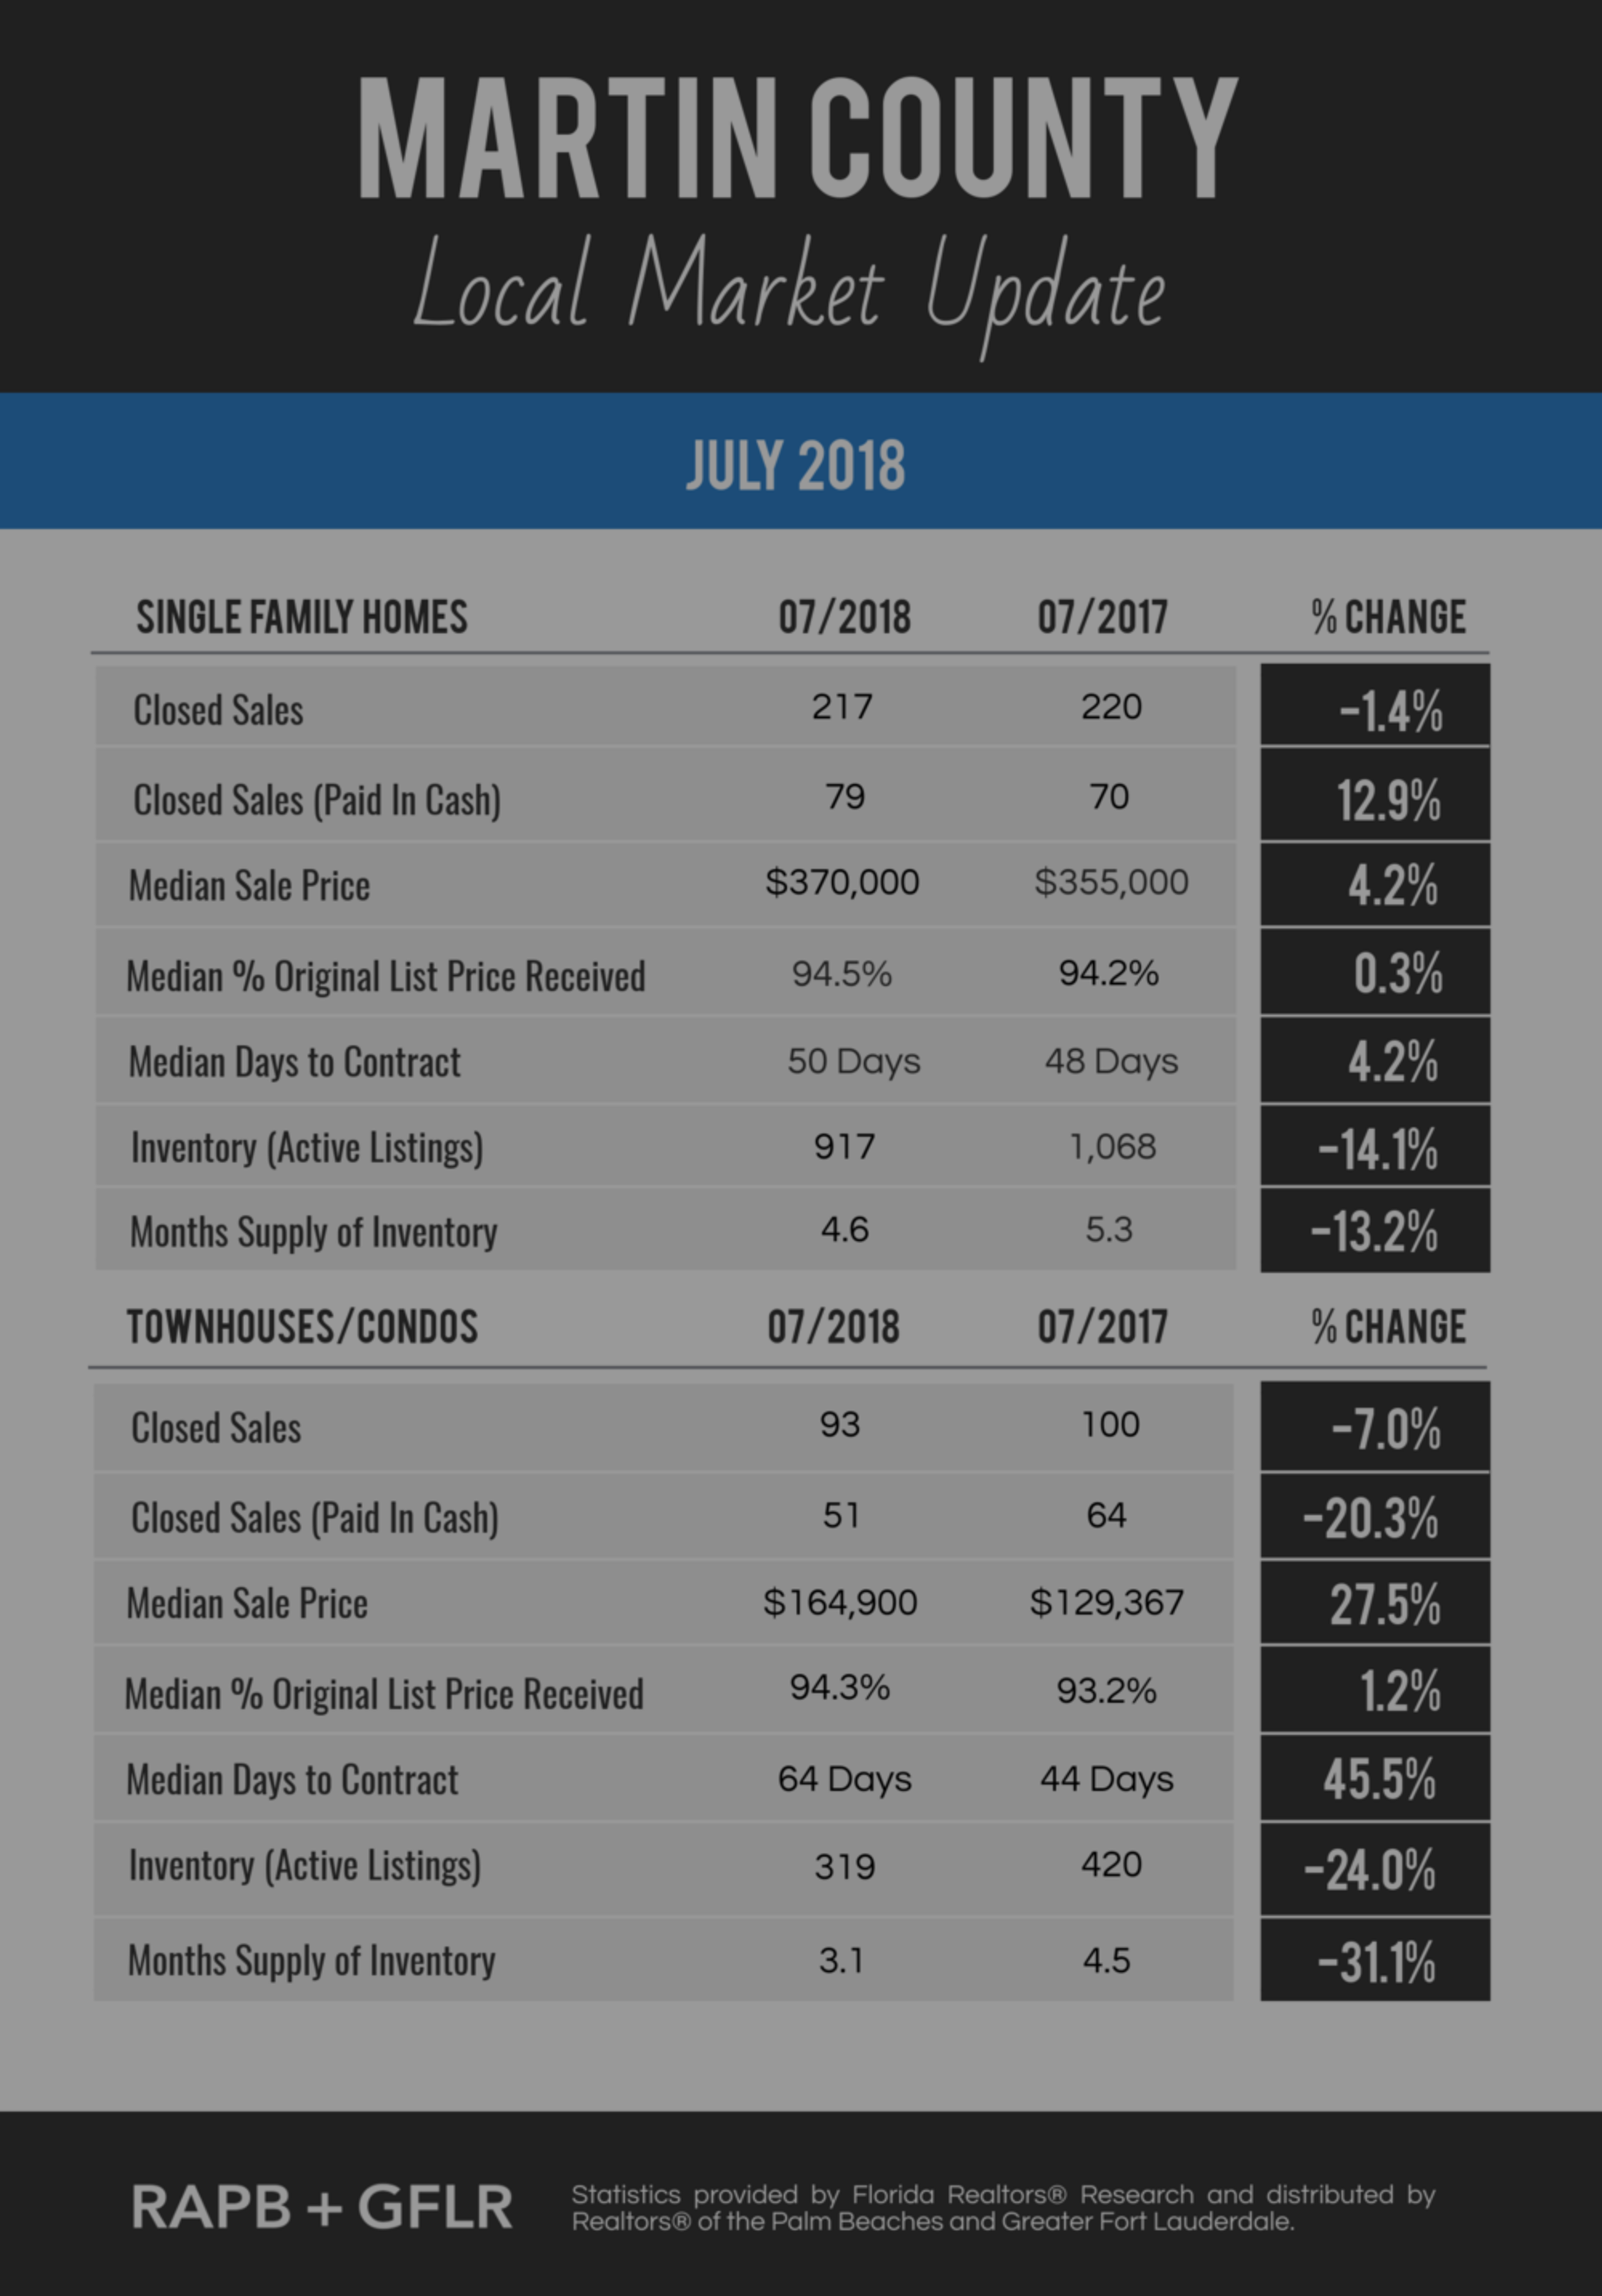 Martin County Market Update for July 2018